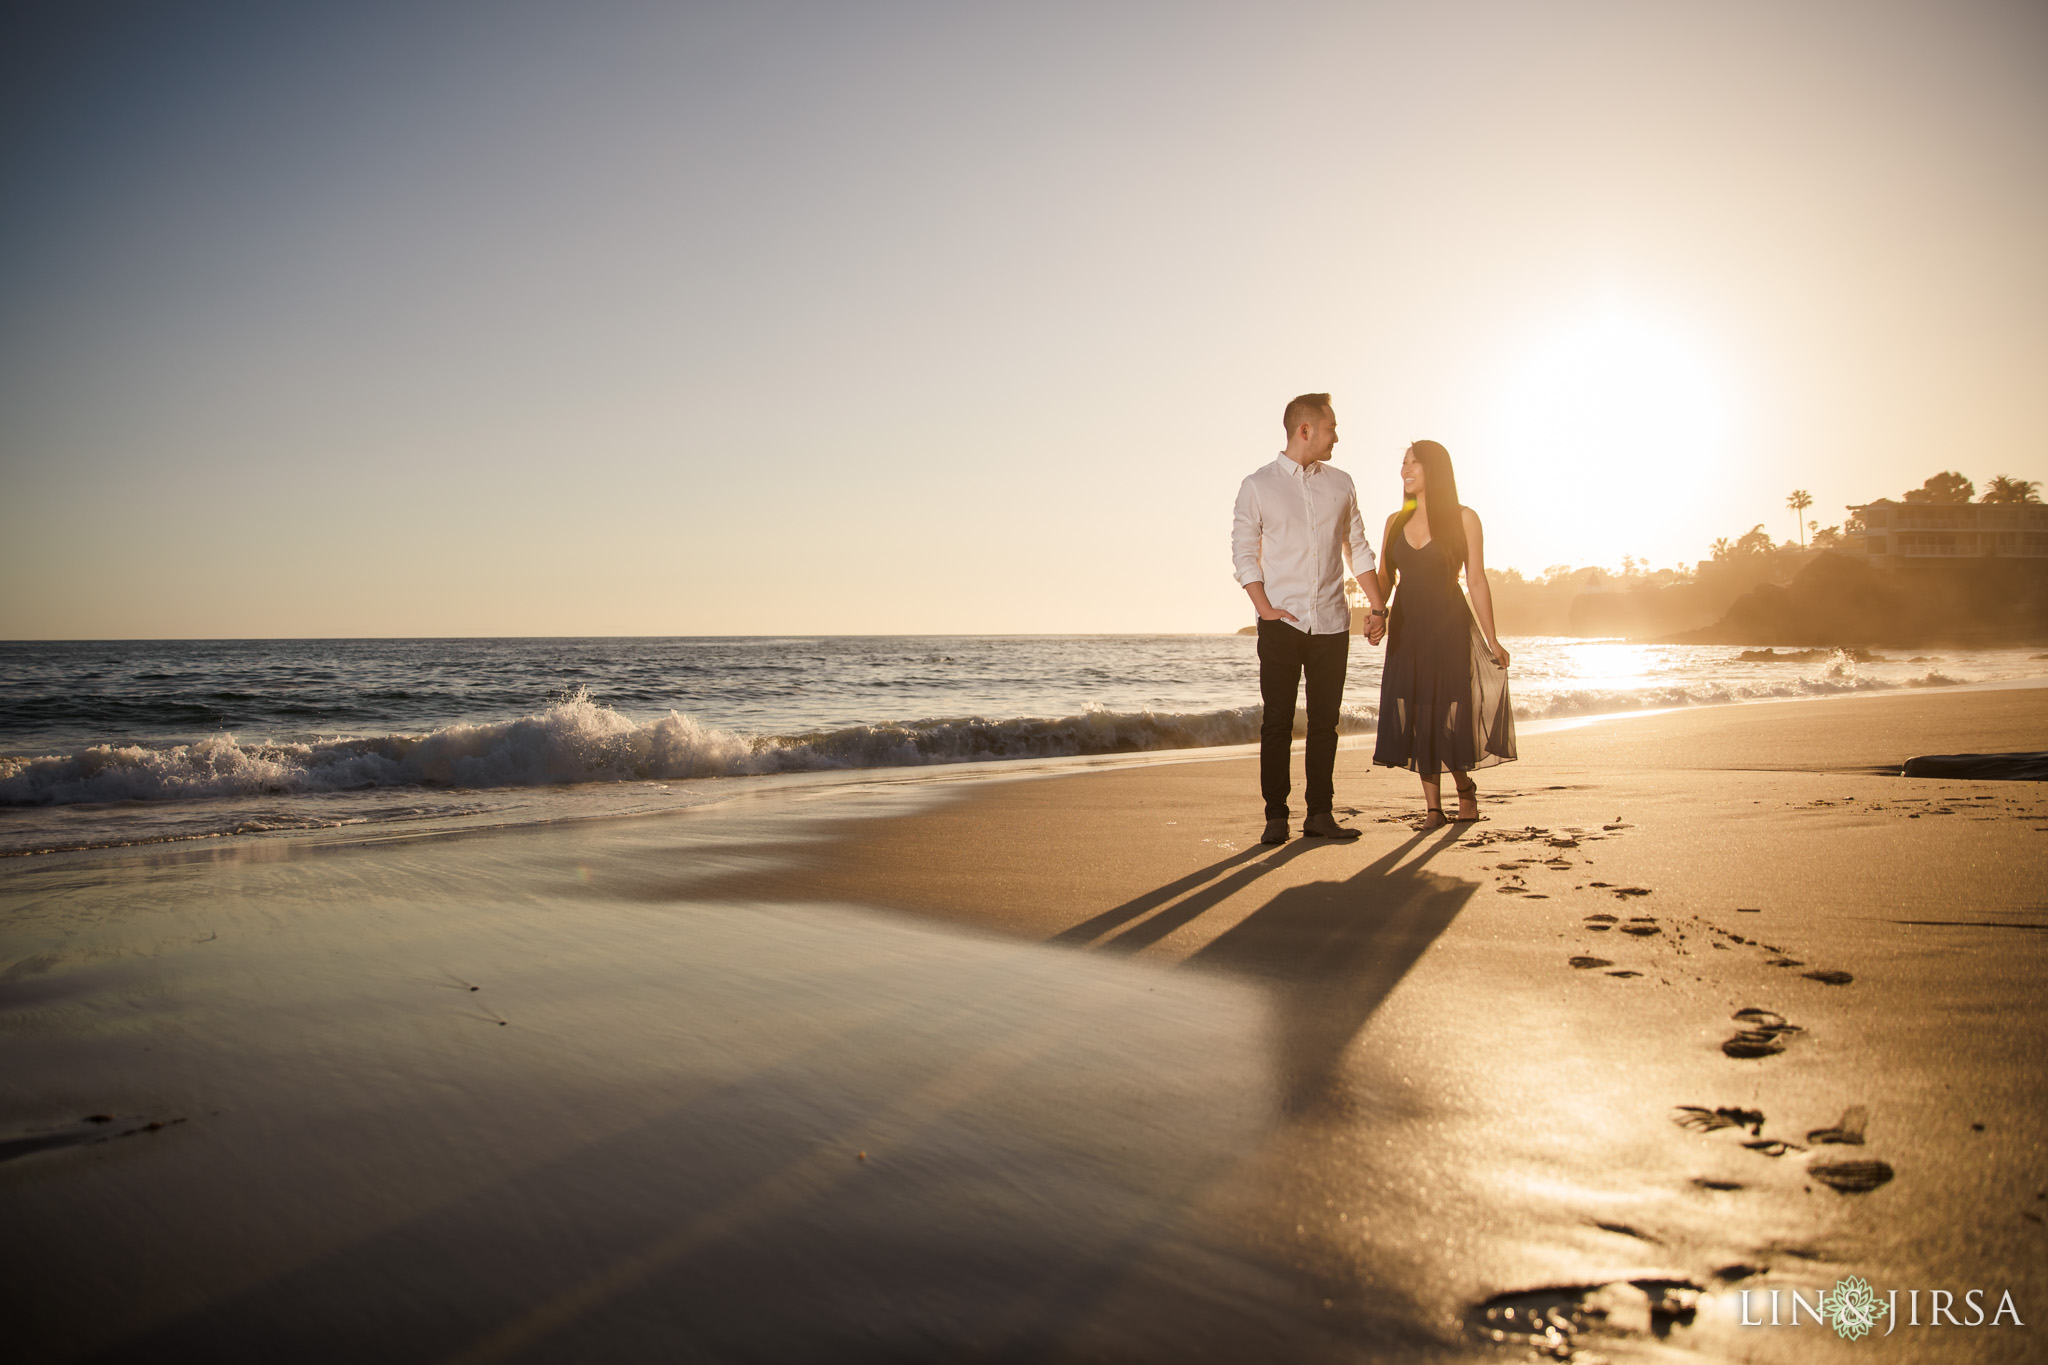 07 Heisler Beach Orange County Proposal Engagement Photography